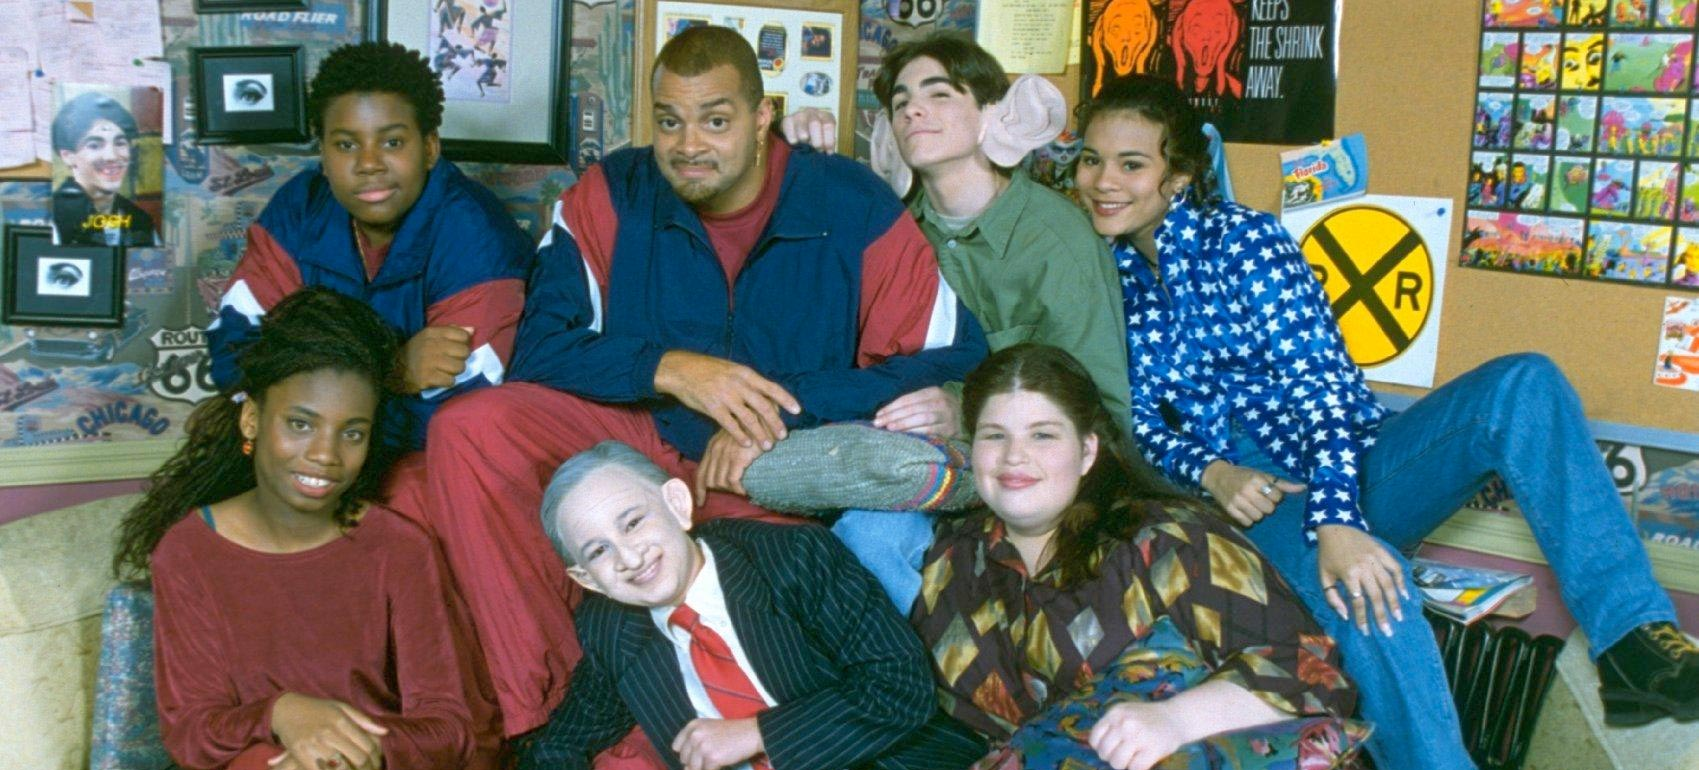 All That Revival Coming To Nickelodeon From Kenan Thompson Film